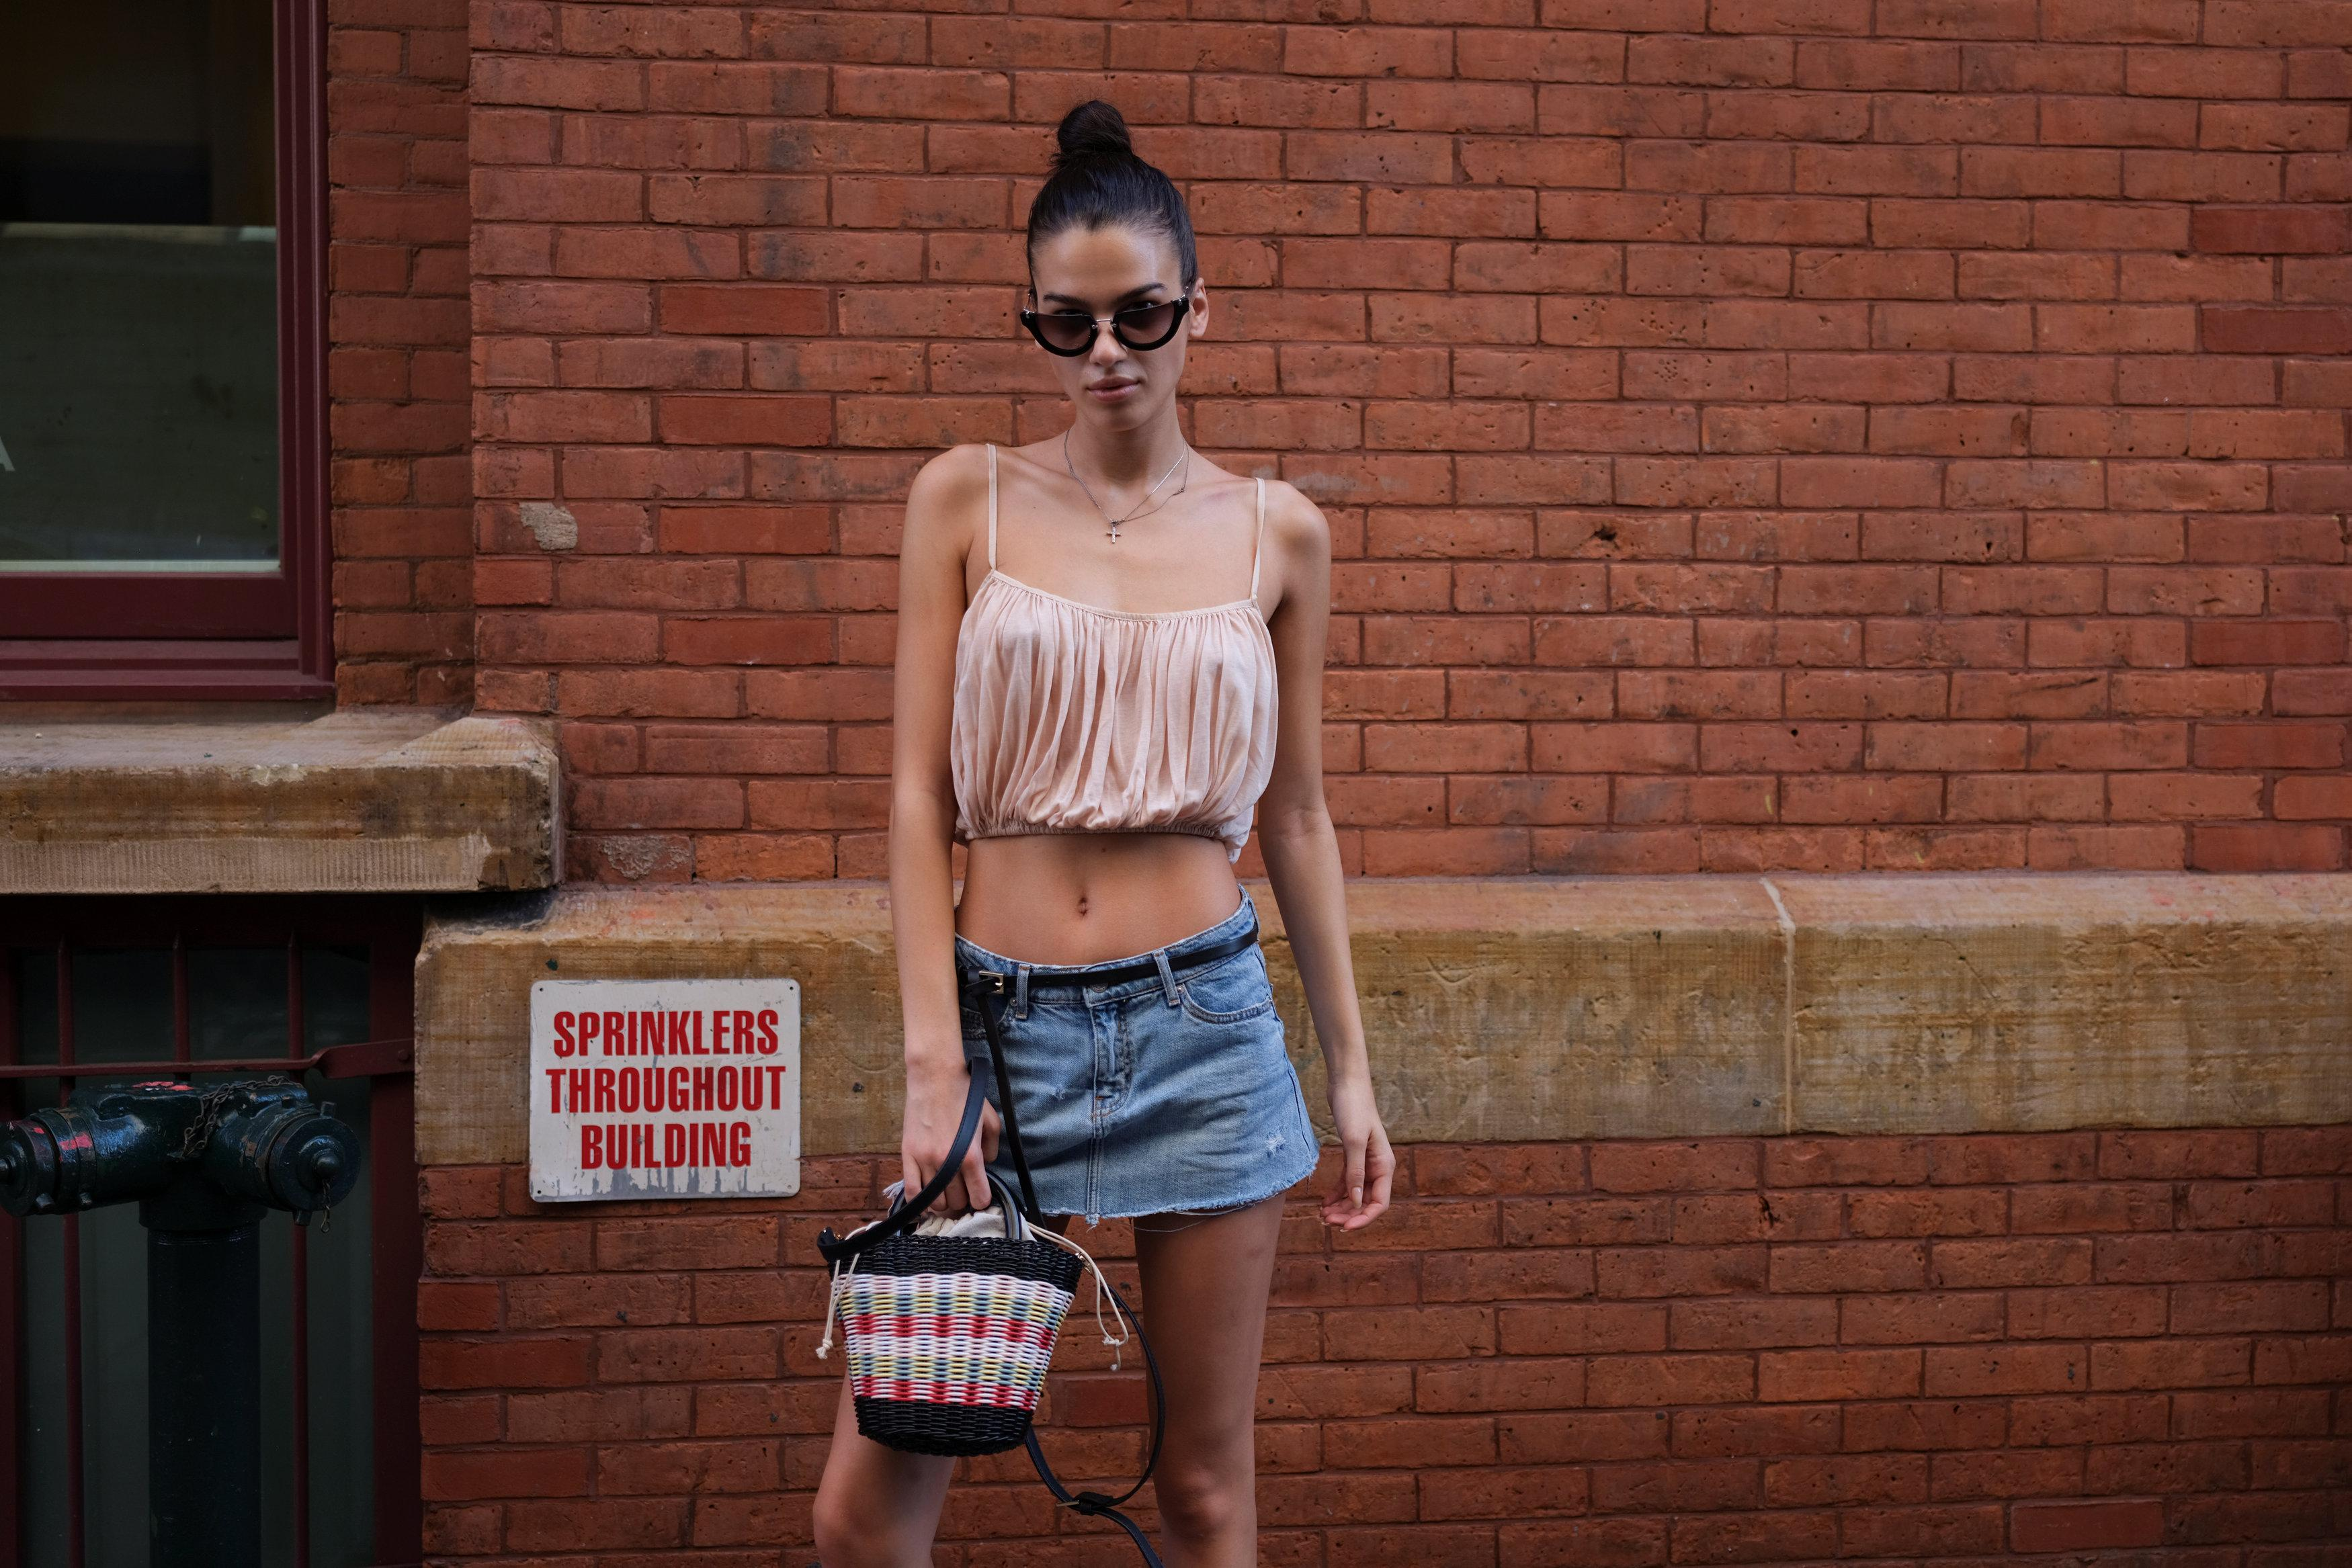 Elena Azzaro, 23, a model based in New York, poses for a picture in the Manhattan borough of New York, U.S., September 3, 2018.  Caitlin Ochs